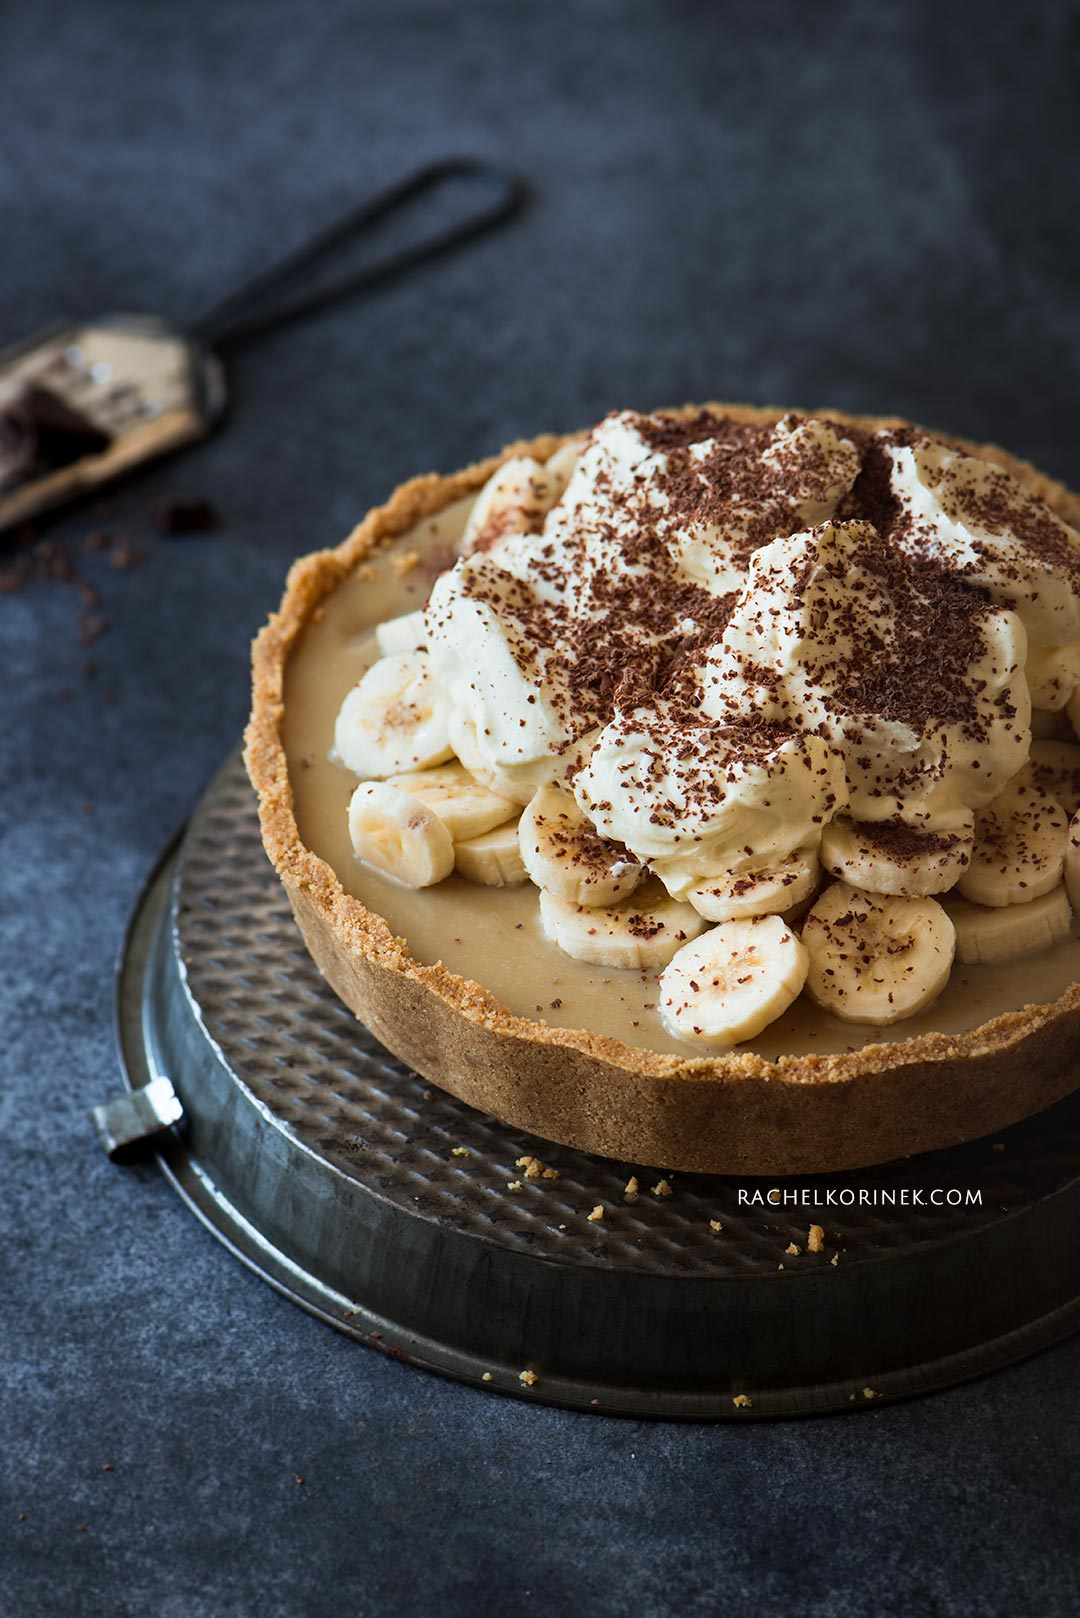 Rachel Korinek Food Photographer | Banoffee Pie  Click to check out my latest food photography projects.  #twolovesstudio #beautifulcuisine #foodbloggerpro #foodphotography #learnfoodphotography #foodblogger #learnphotography #foodstyling #lightingtips #naturallight #foodphotographer